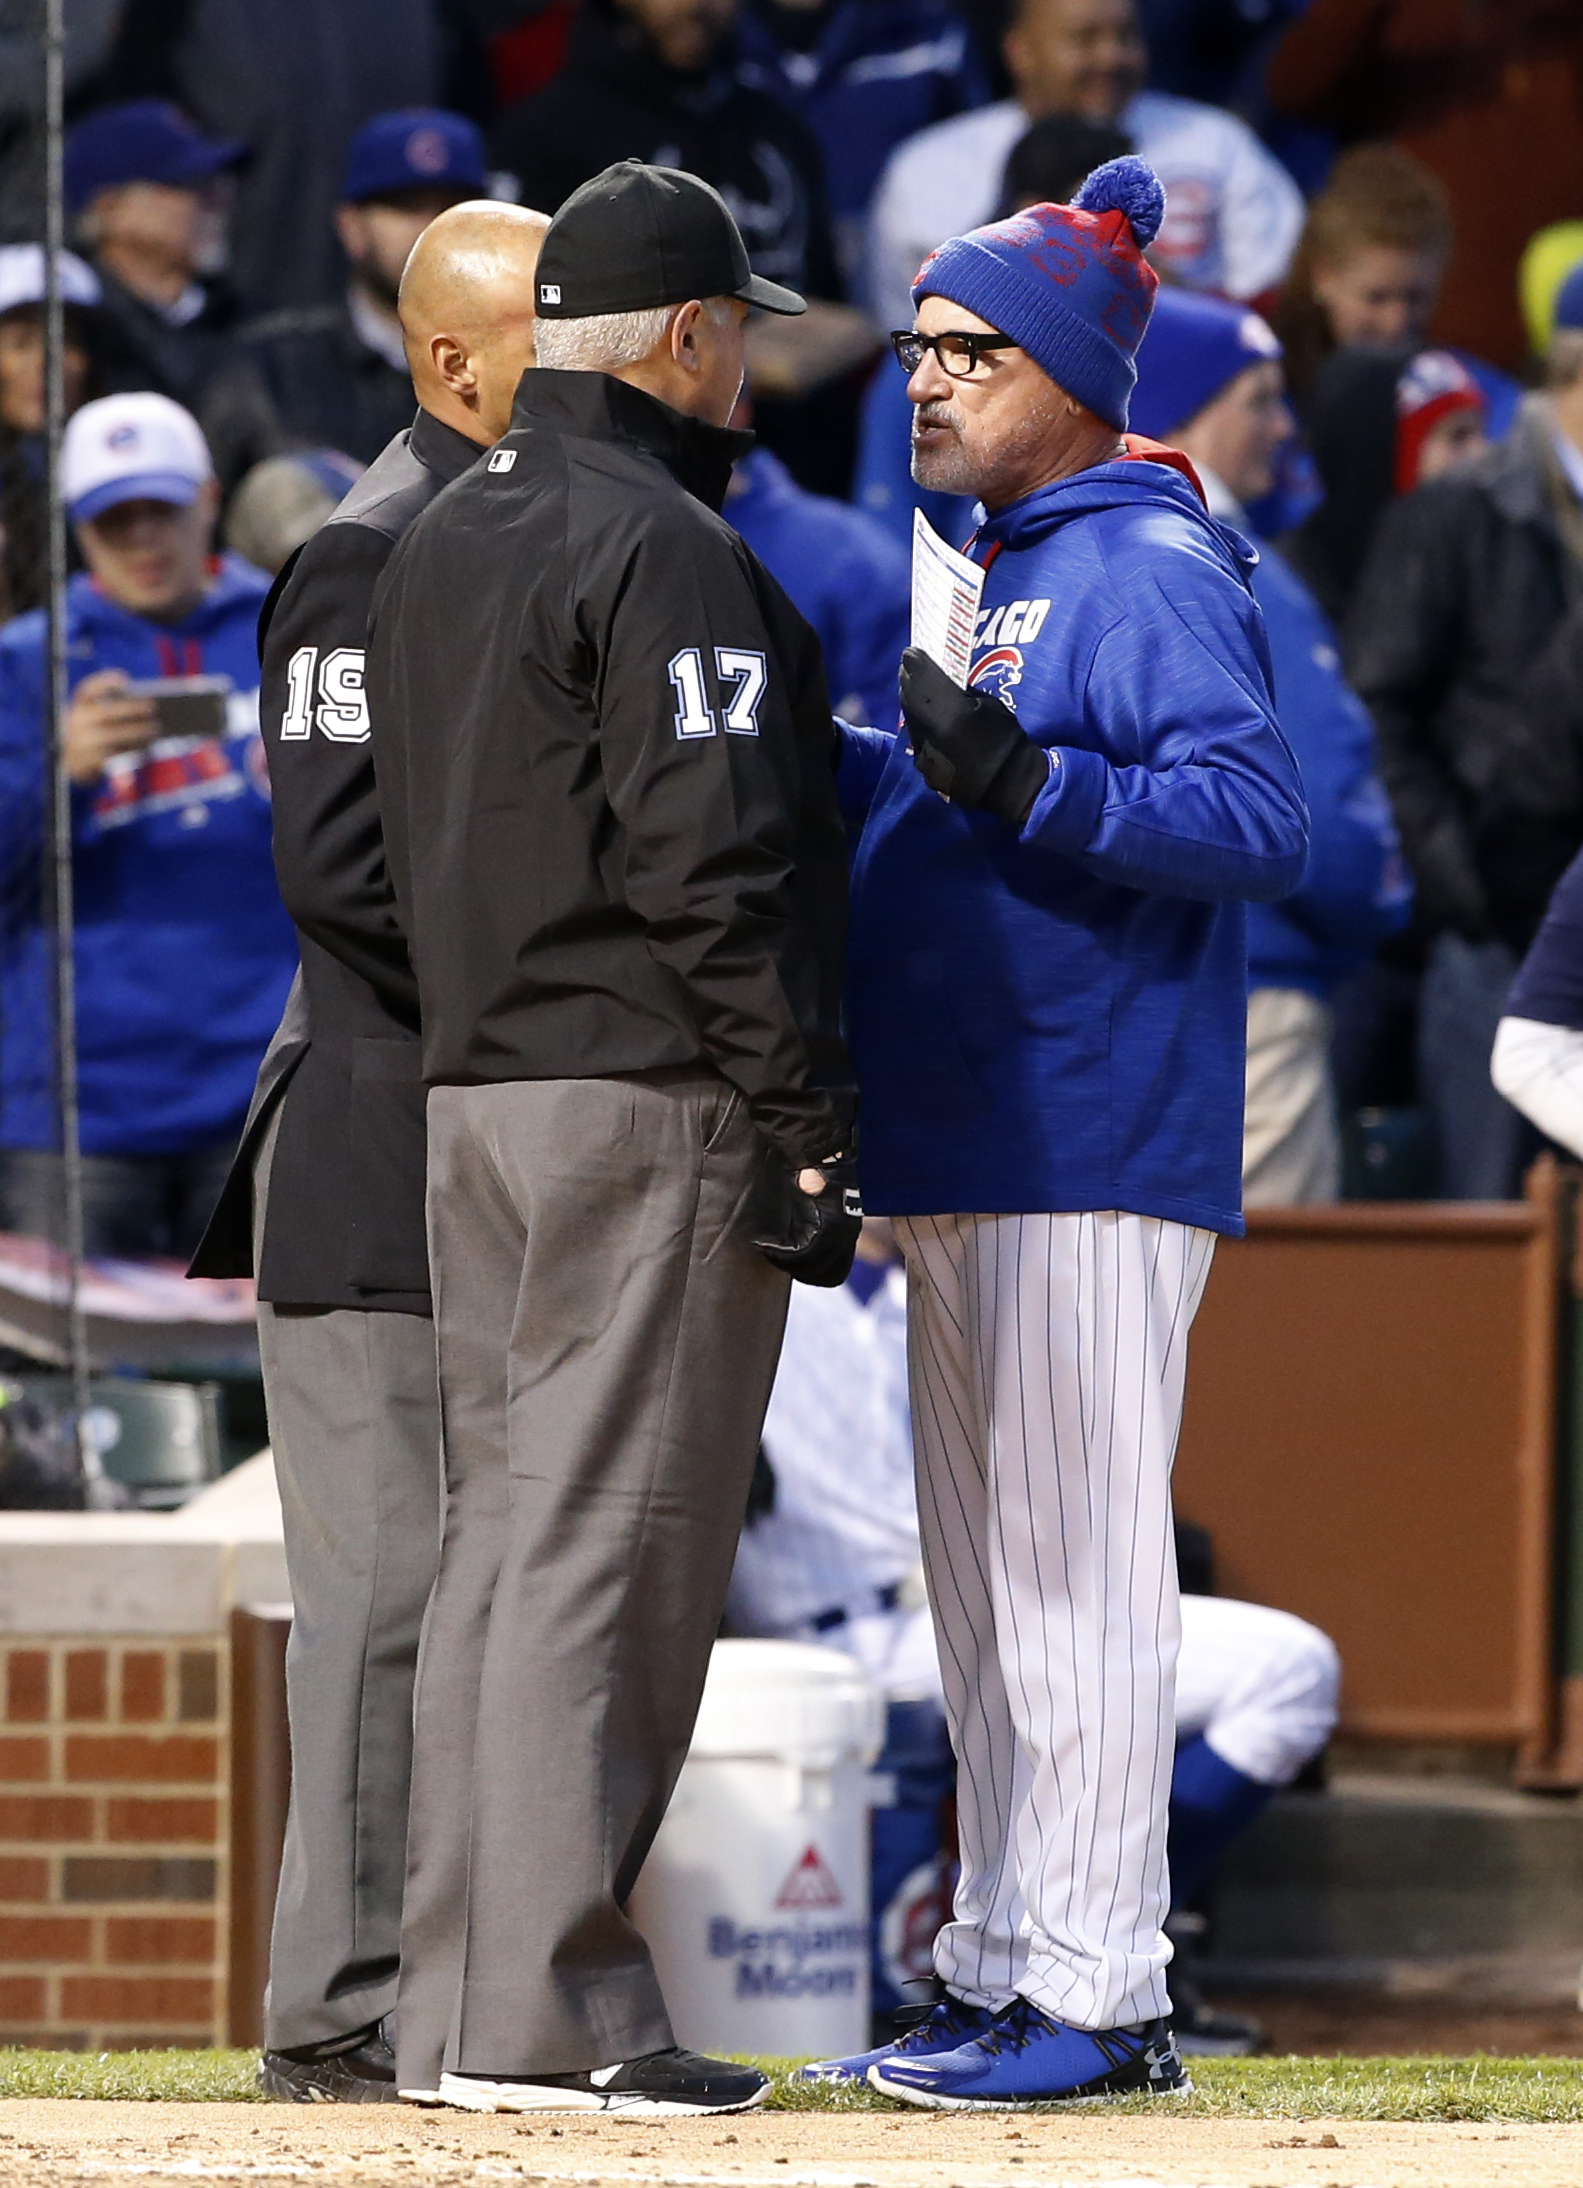 Chicago Cubs manager Joe Maddon, right, argues with home plate umpire Vic Carapazza and first base umpire John Hirschbeck after Dexter Fowler ejected by home plate umpire Vic Carapazza after the third inning of a baseball game against the Washington Natio